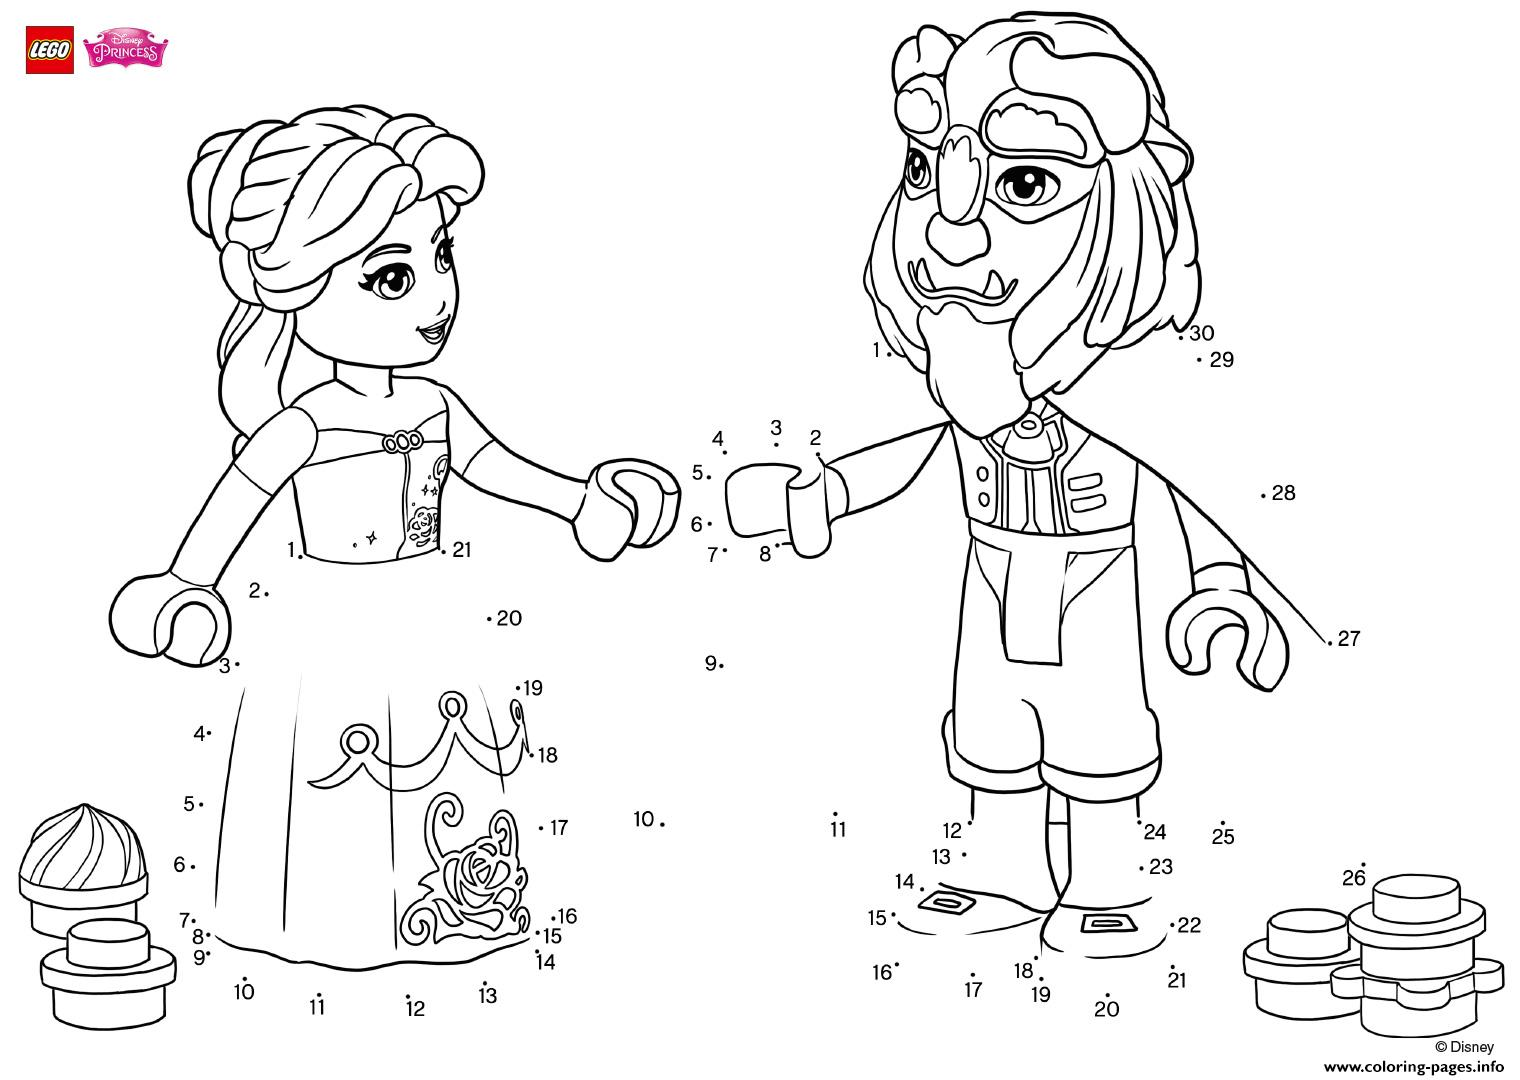 Have Fun Completing The Drawing Of Beauty And The Beast